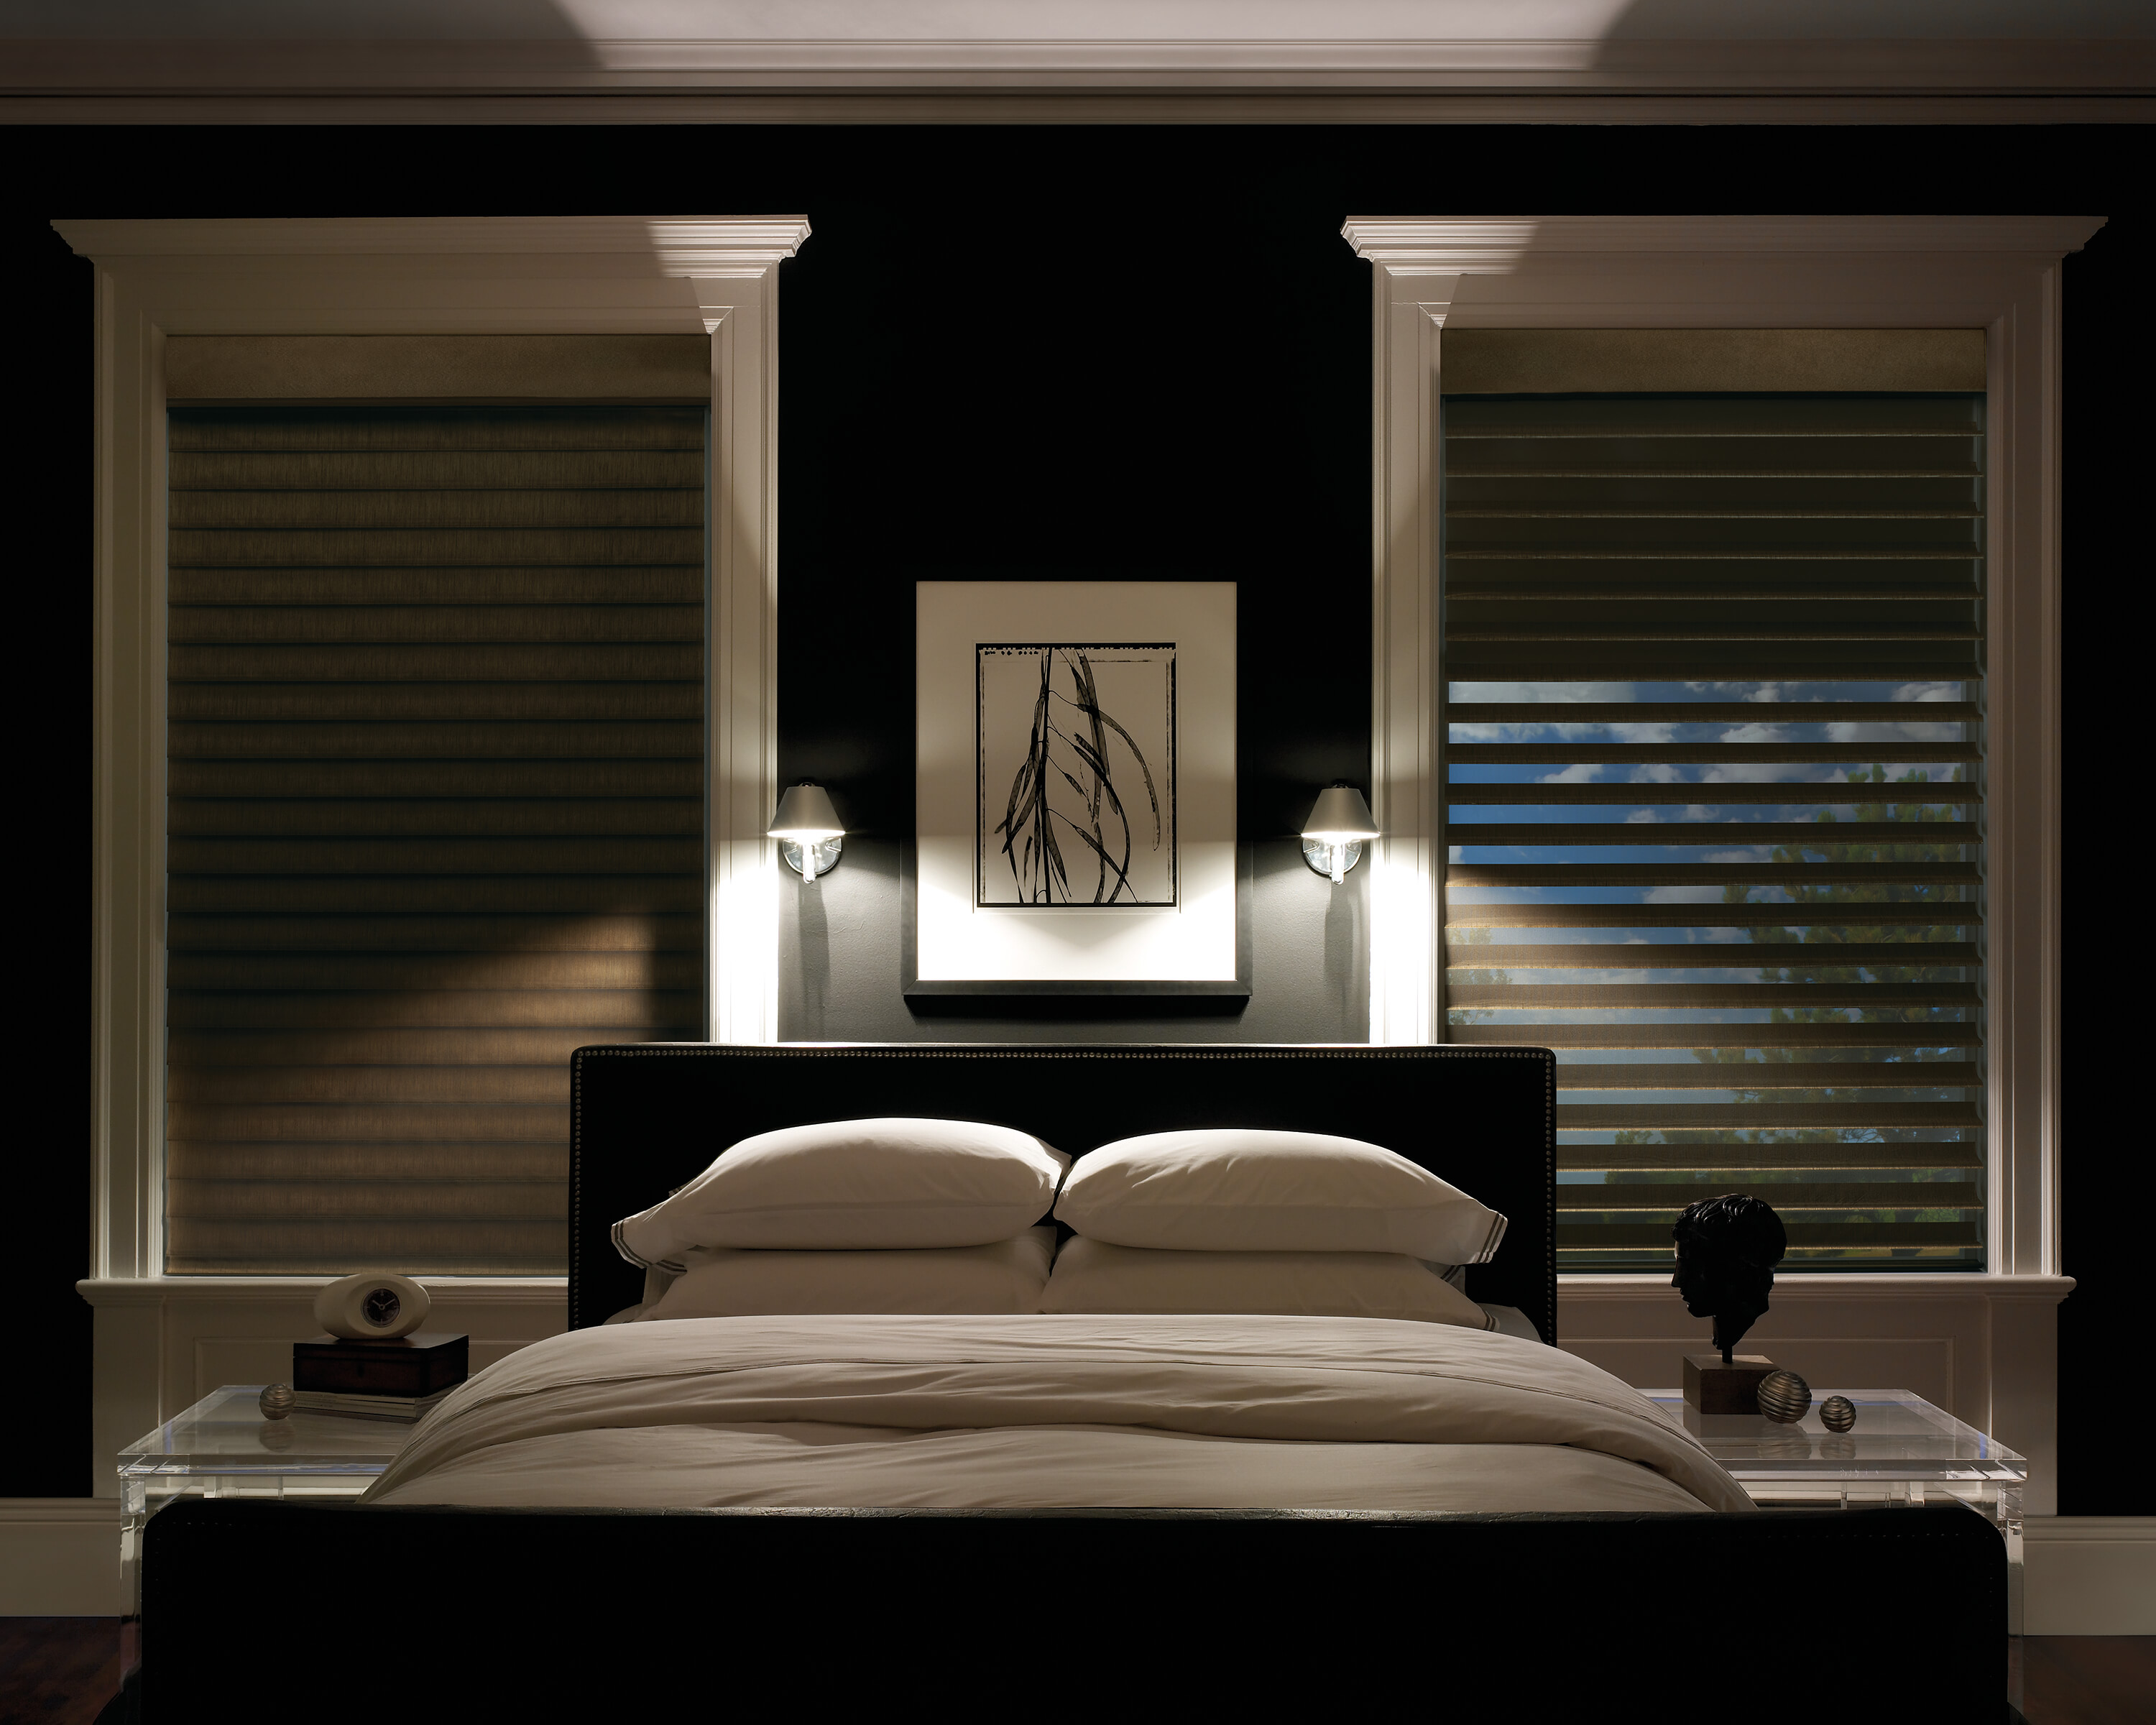 Bedroom Curtains Room Darkening Room Darkening And Blackout Window Treatments Drapery Street